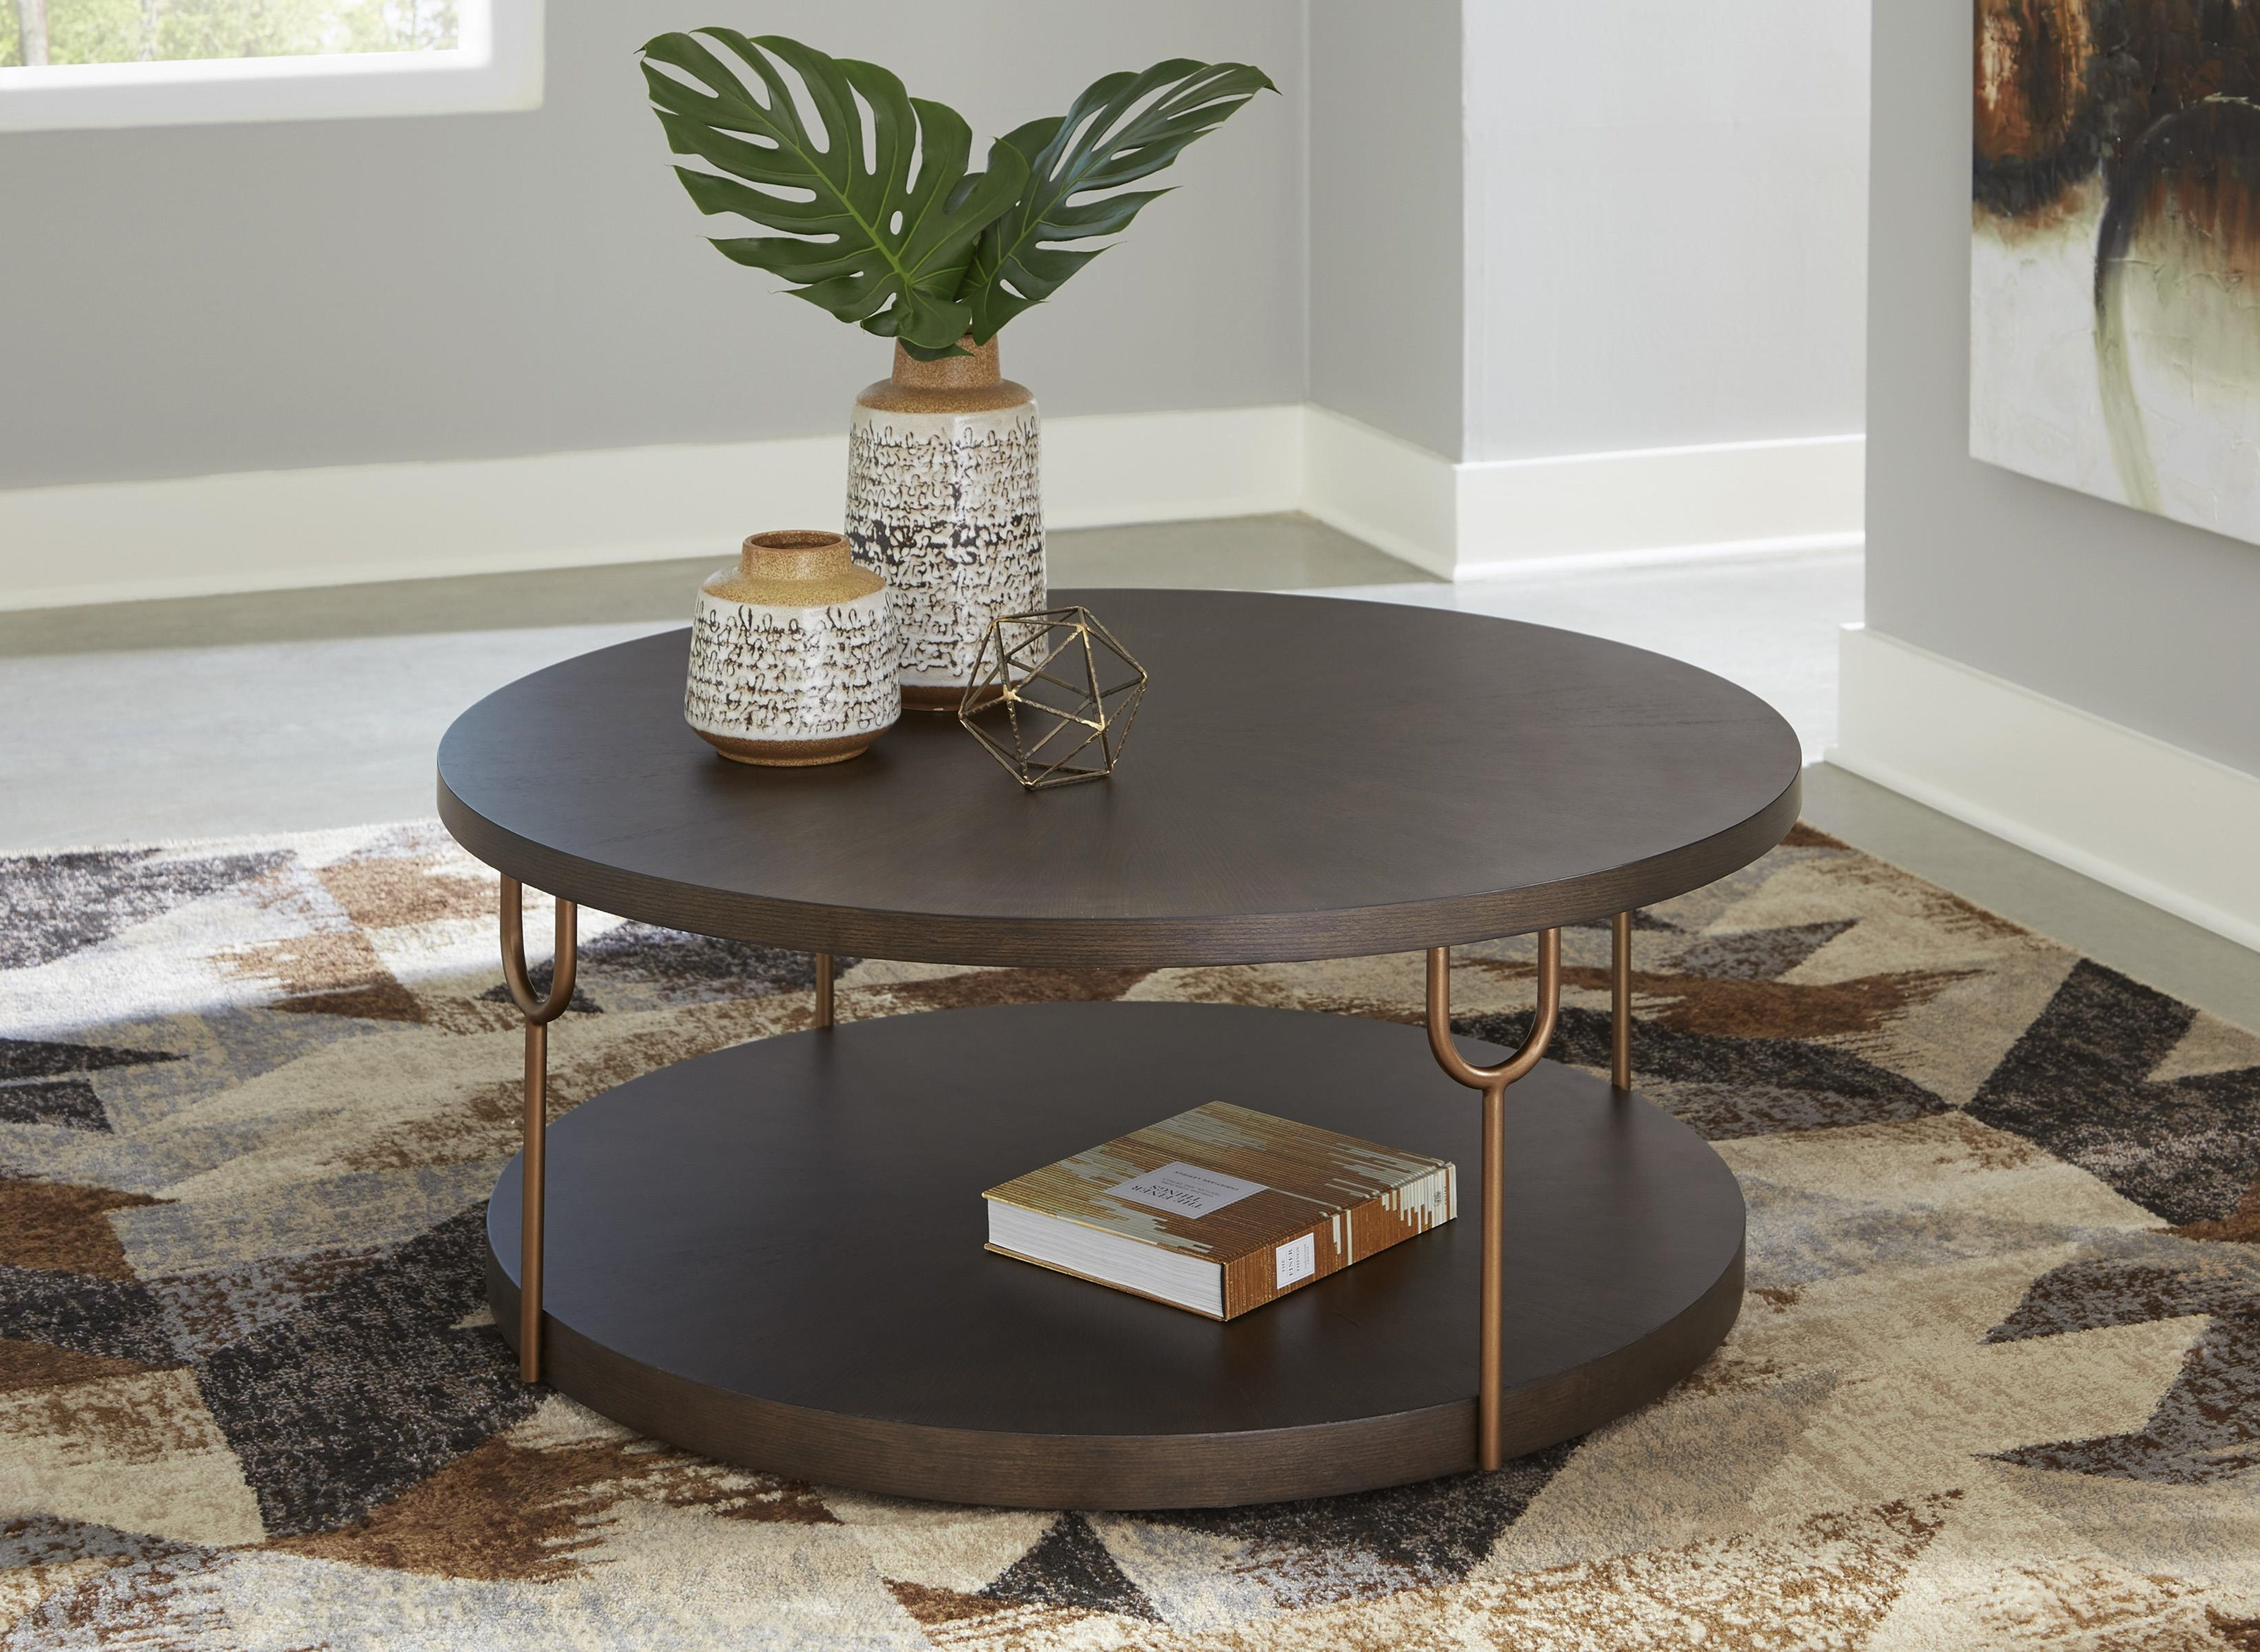 Brazburn 3 Piece Coffee Table Set by Signature Design by Ashley at Sam Levitz Outlet